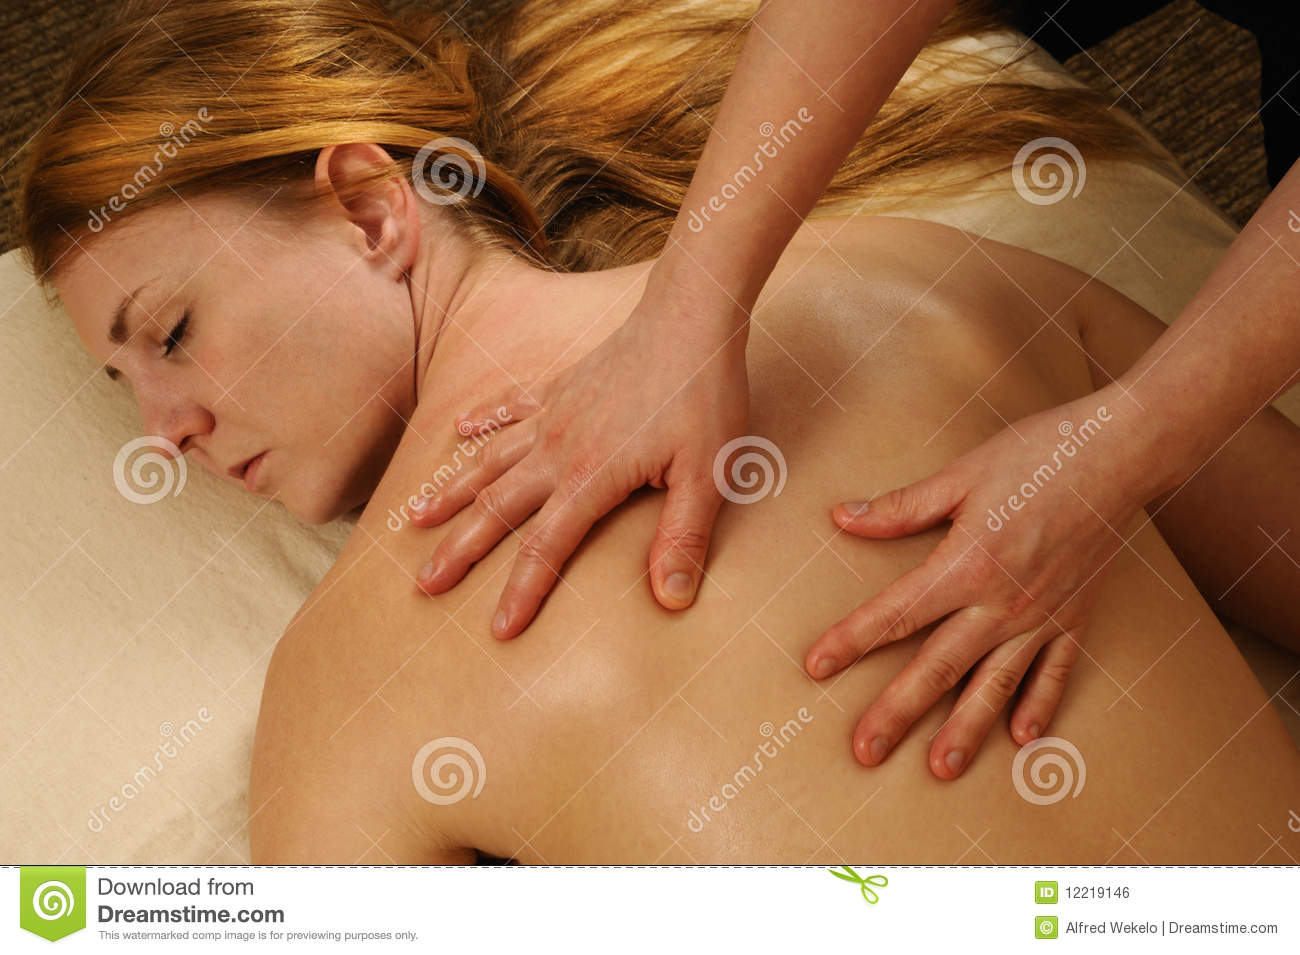 Where Can I Get Full Body Massage Spa Full Body Massage On Woman Stock Photo Image Of Comfort